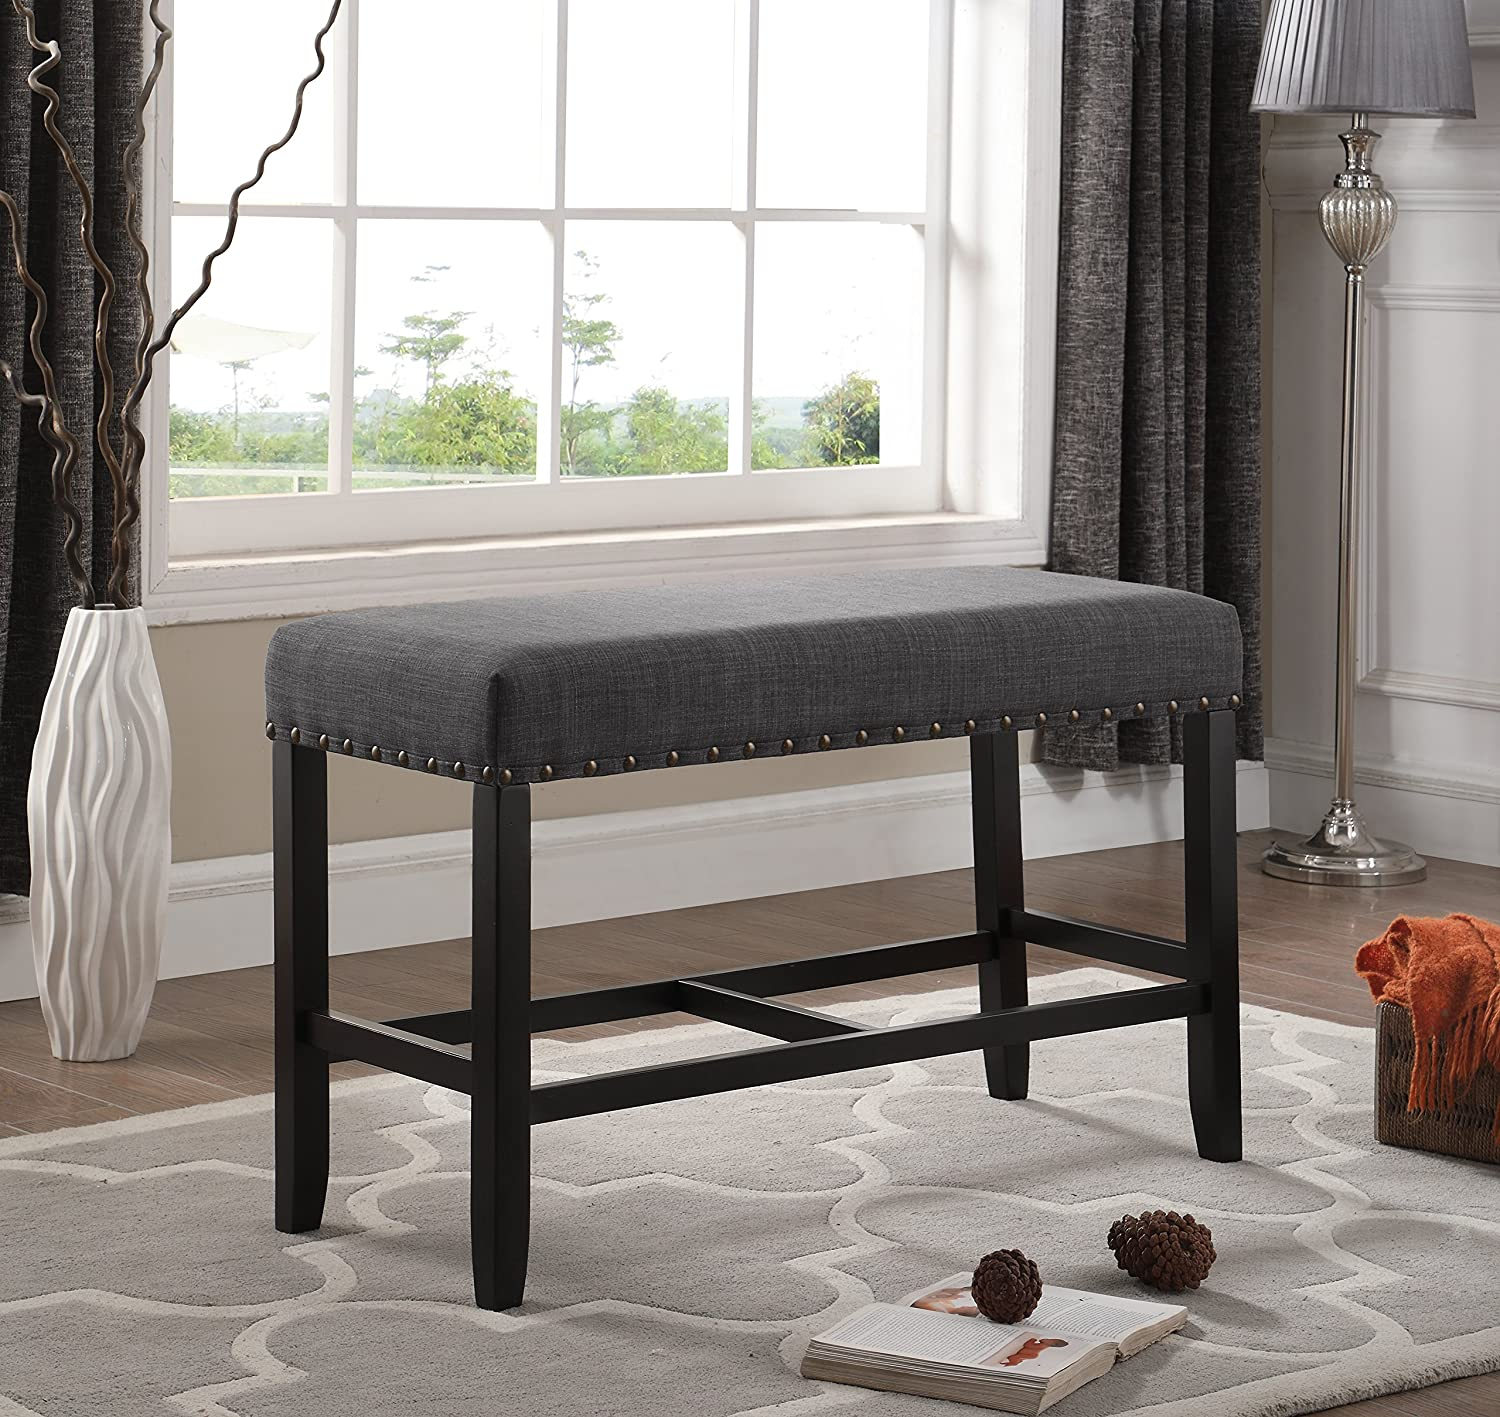 Cool Roundhill Furniture Biony Fabric Counter Height Dining Bench With Nailhead Trim Grey Pabps2019 Chair Design Images Pabps2019Com